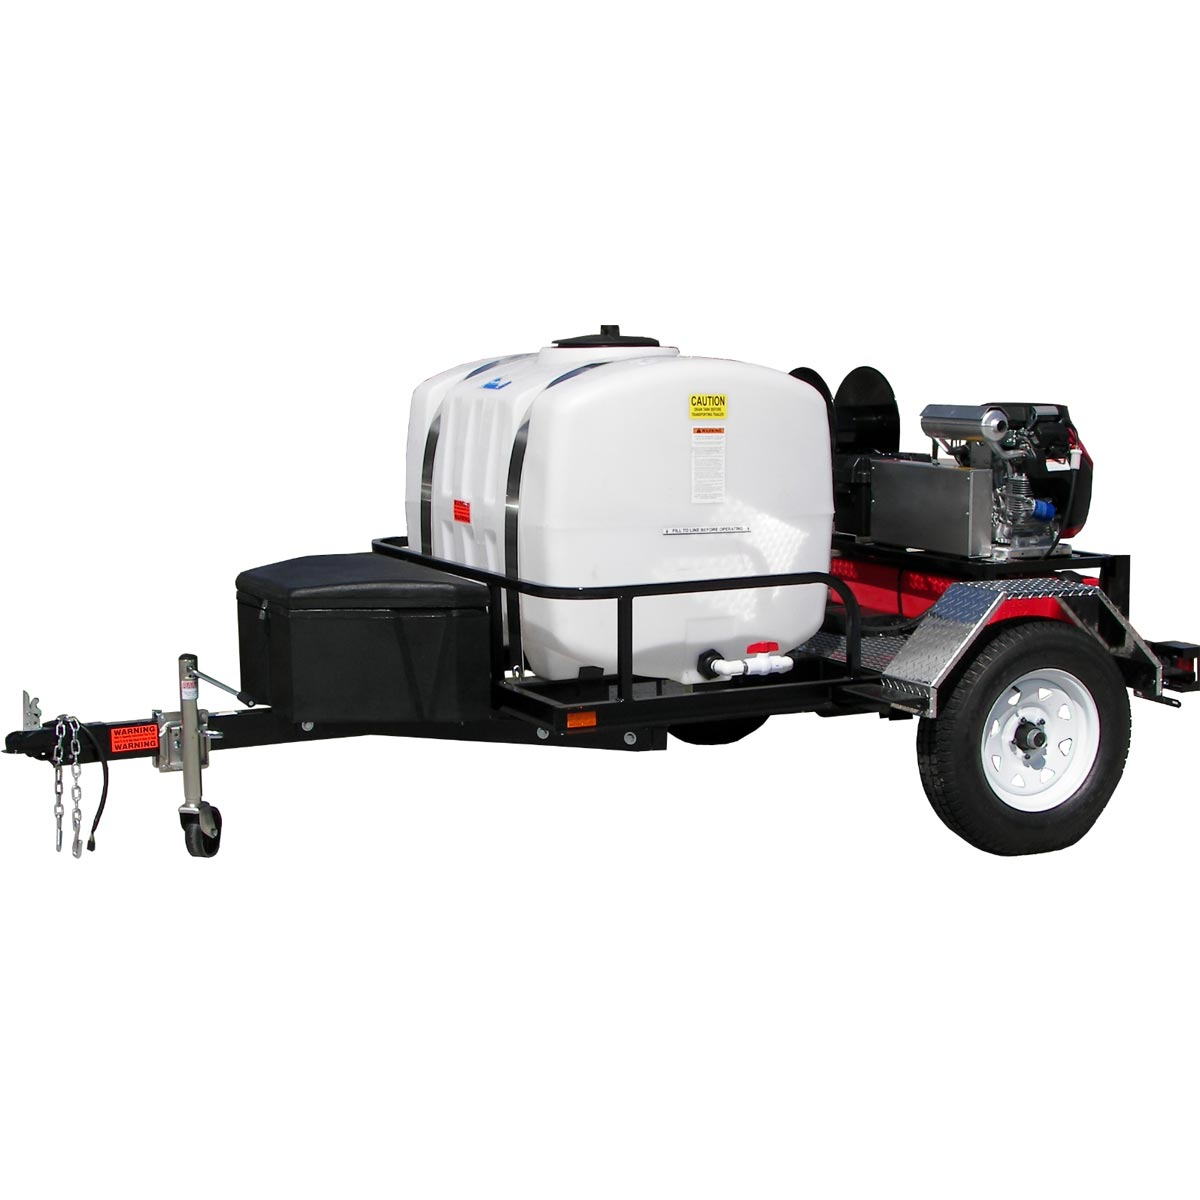 TRHDCV8030HG Pressure Pro GP Pressure Washer Tow-Pro Trailer Outfit 3000  PSI @ 8.0 GPM FREE Shipping